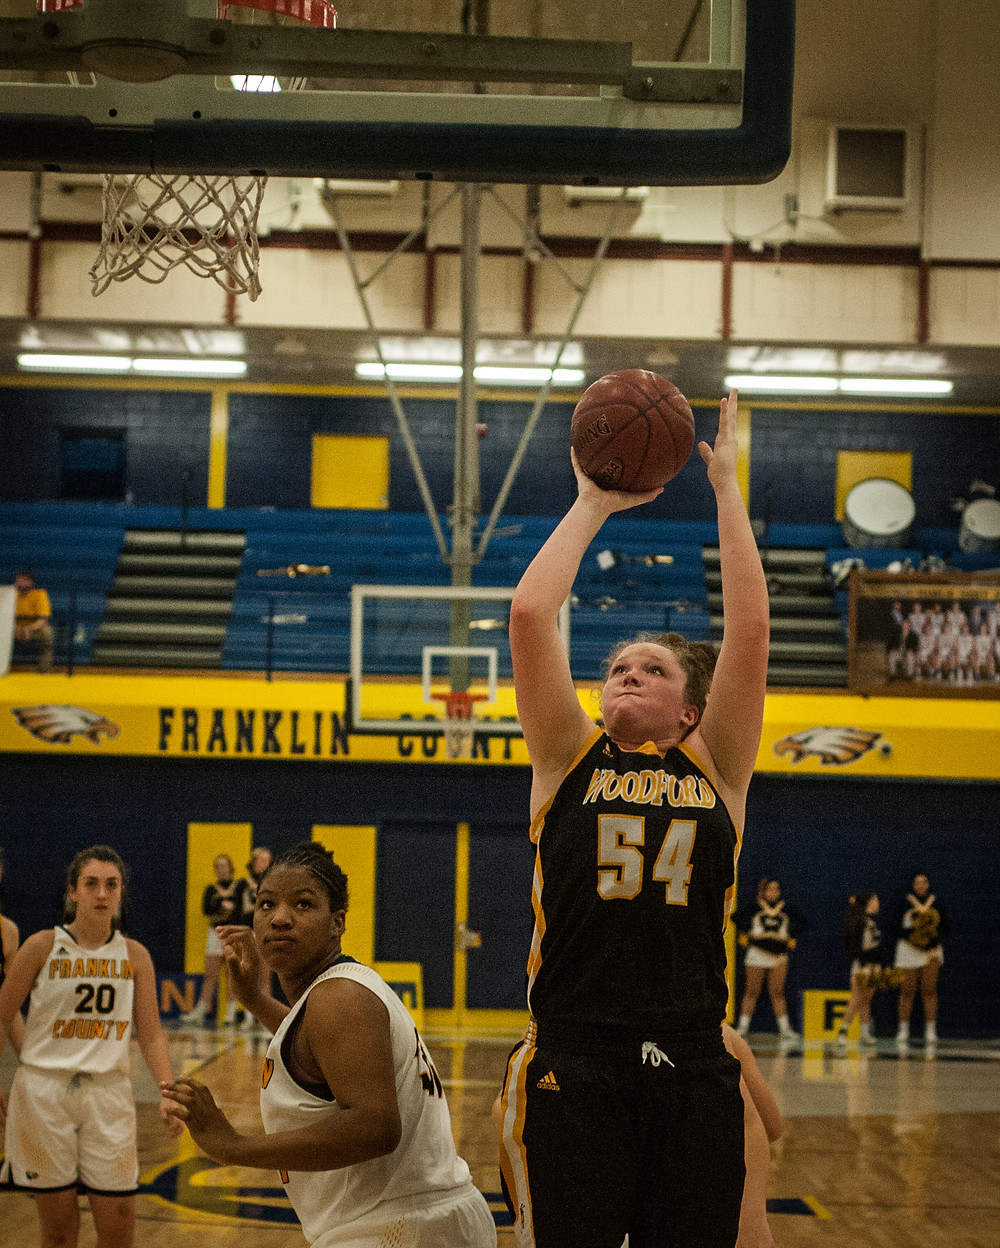 WCHS SOPHOMORE DELANEY ENLOW scored her 1,000th point on Thursday, Jan. 11 at Franklin County High School. Enlow is averaging 15 points per game this season for the Lady Jackets. (Photo by Bill Caine)